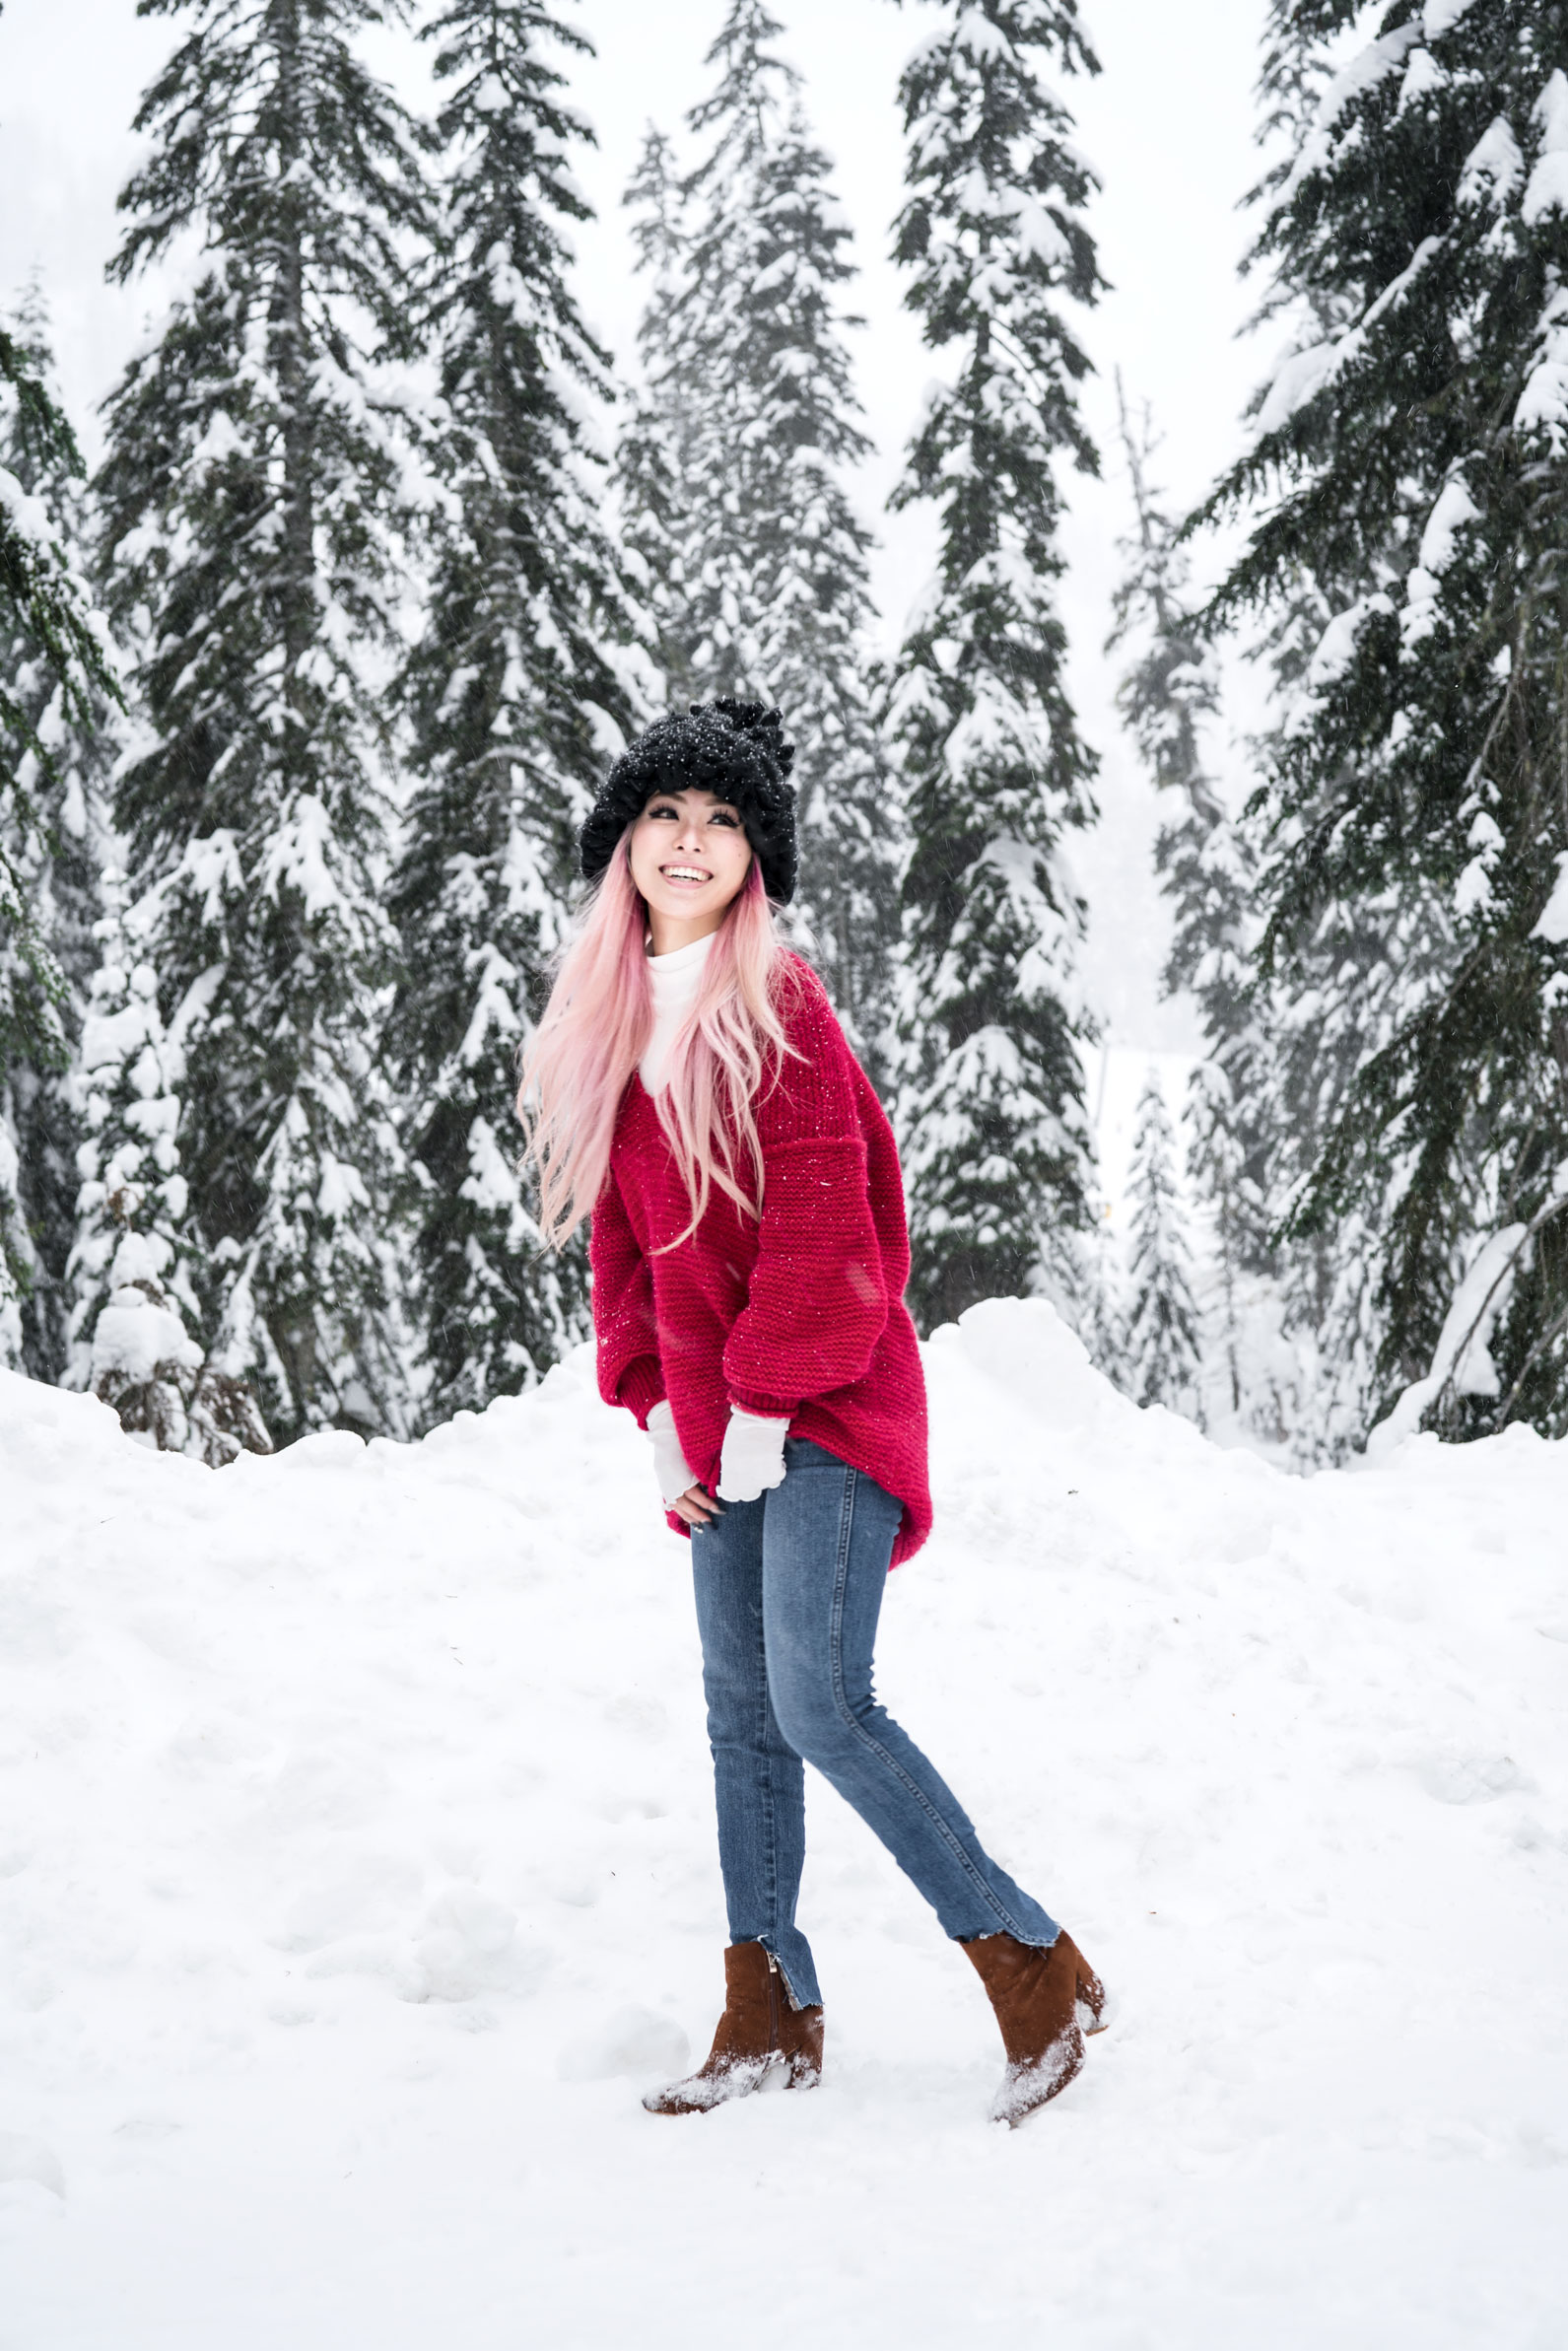 Free people All Mine Sweater, Free People Modern Cuff Layering Top, Free People Ace High Rise Jeans, Free People Bobbi Chunky Pom Beanie, EGO Ankle Boots, Aika's Love Closet, Seattle Fashion Blogger from Japan, Pink Hair 2